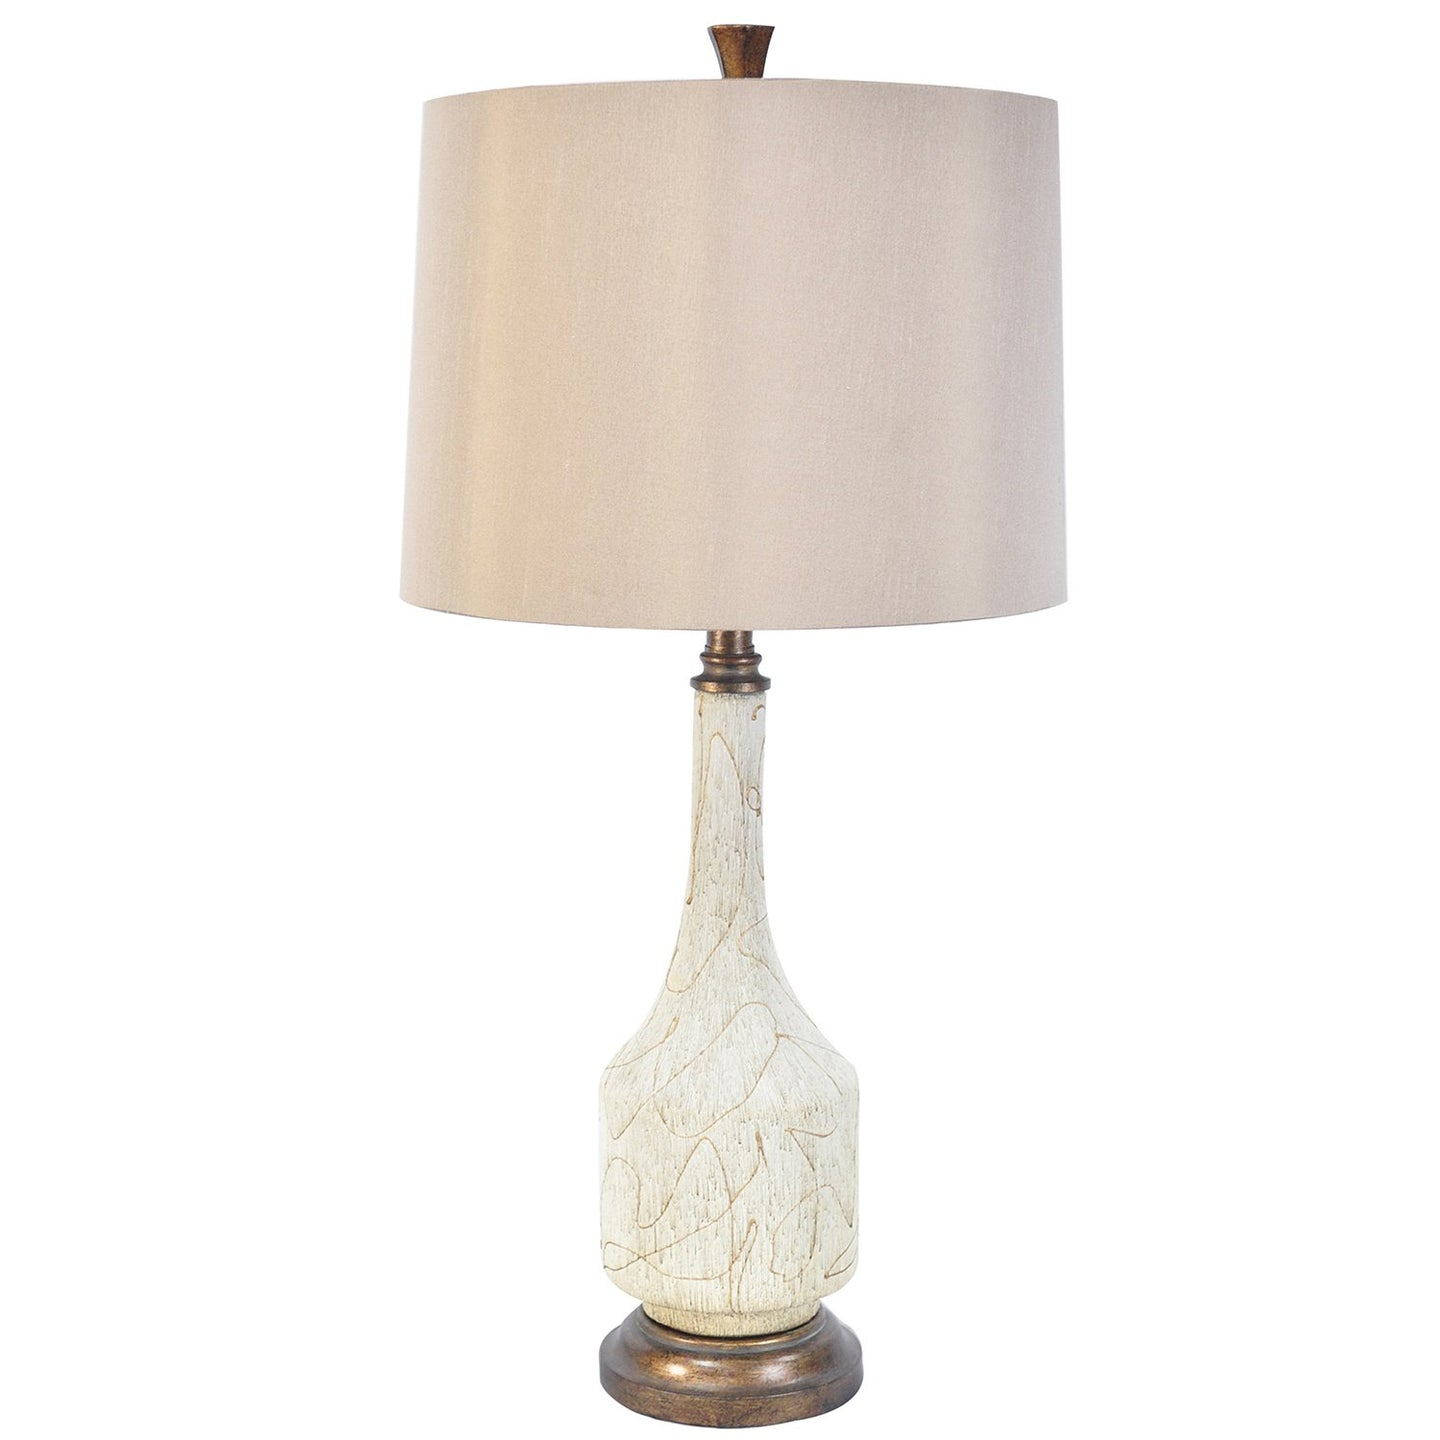 Cressida Table Lamp